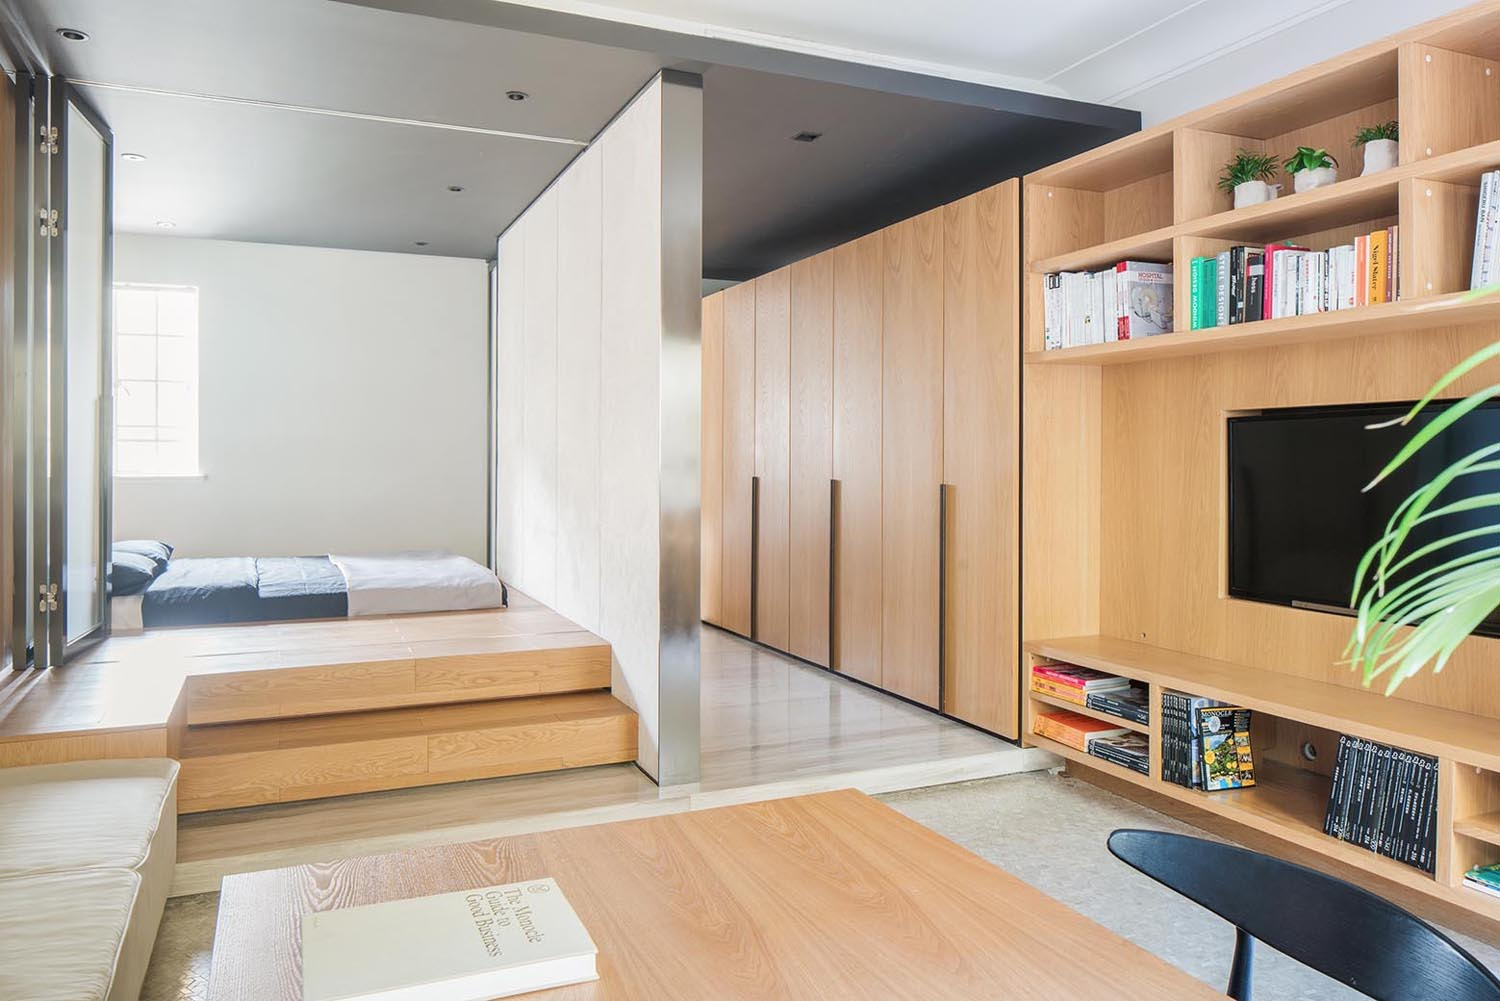 Tiny Apartment With Functional Design That Feels Open Yet